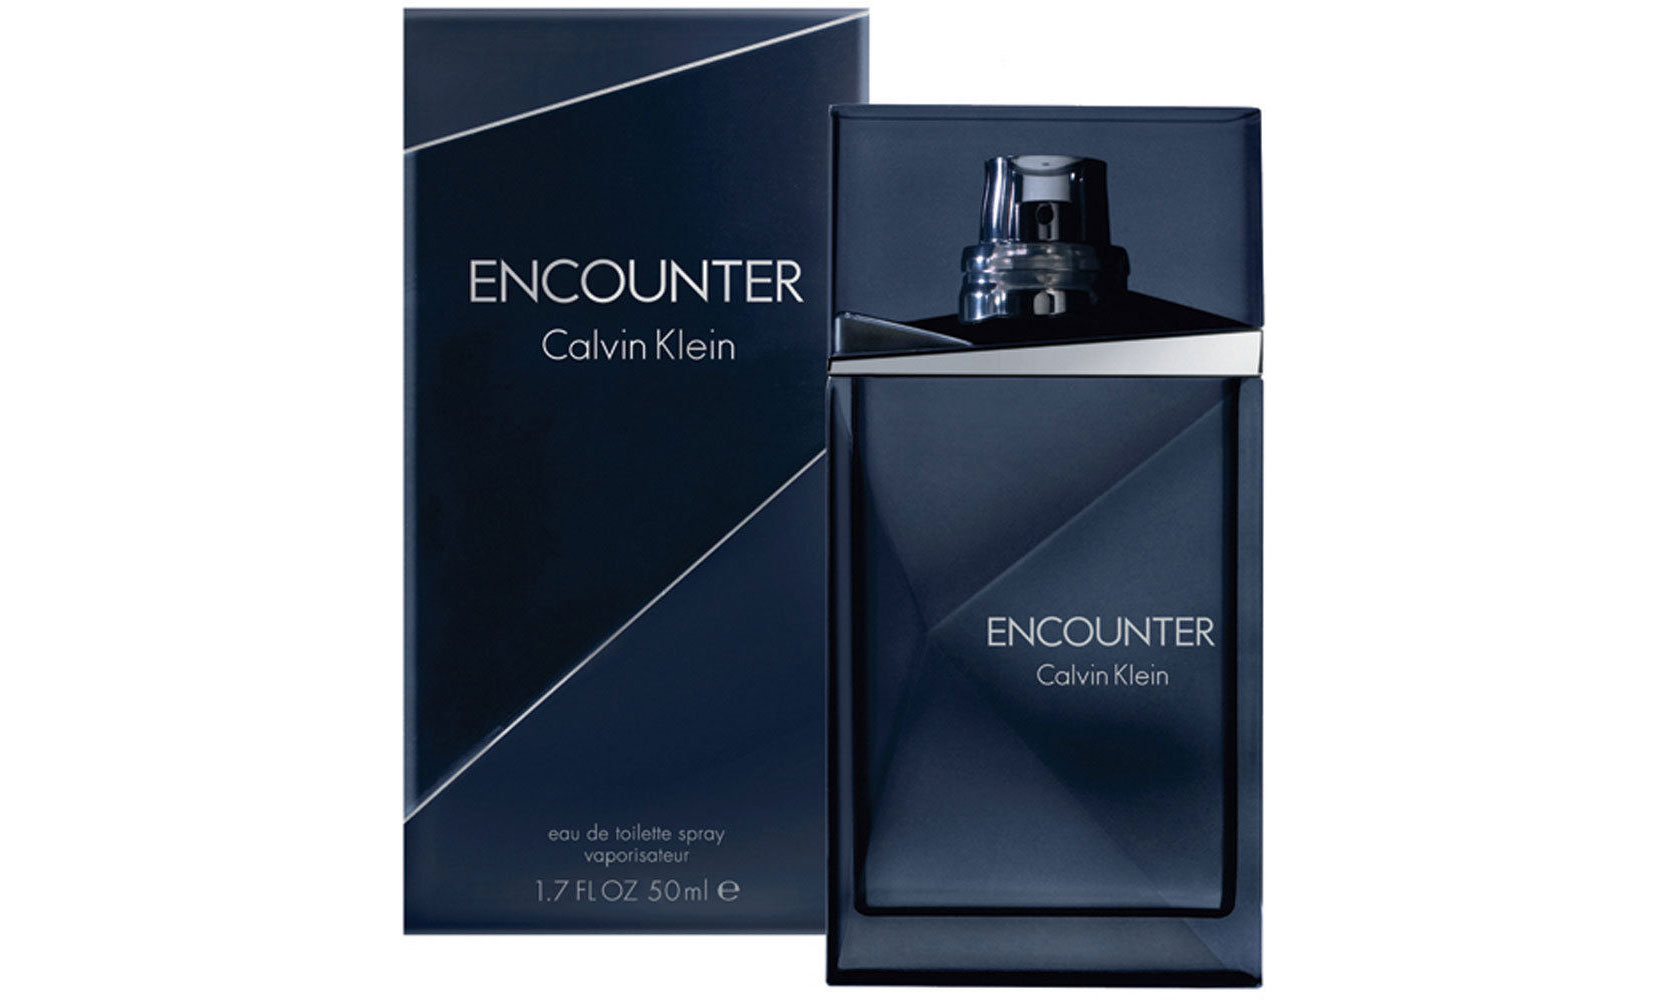 50, 100 or 185ml CK Encounter EDT From £12.98